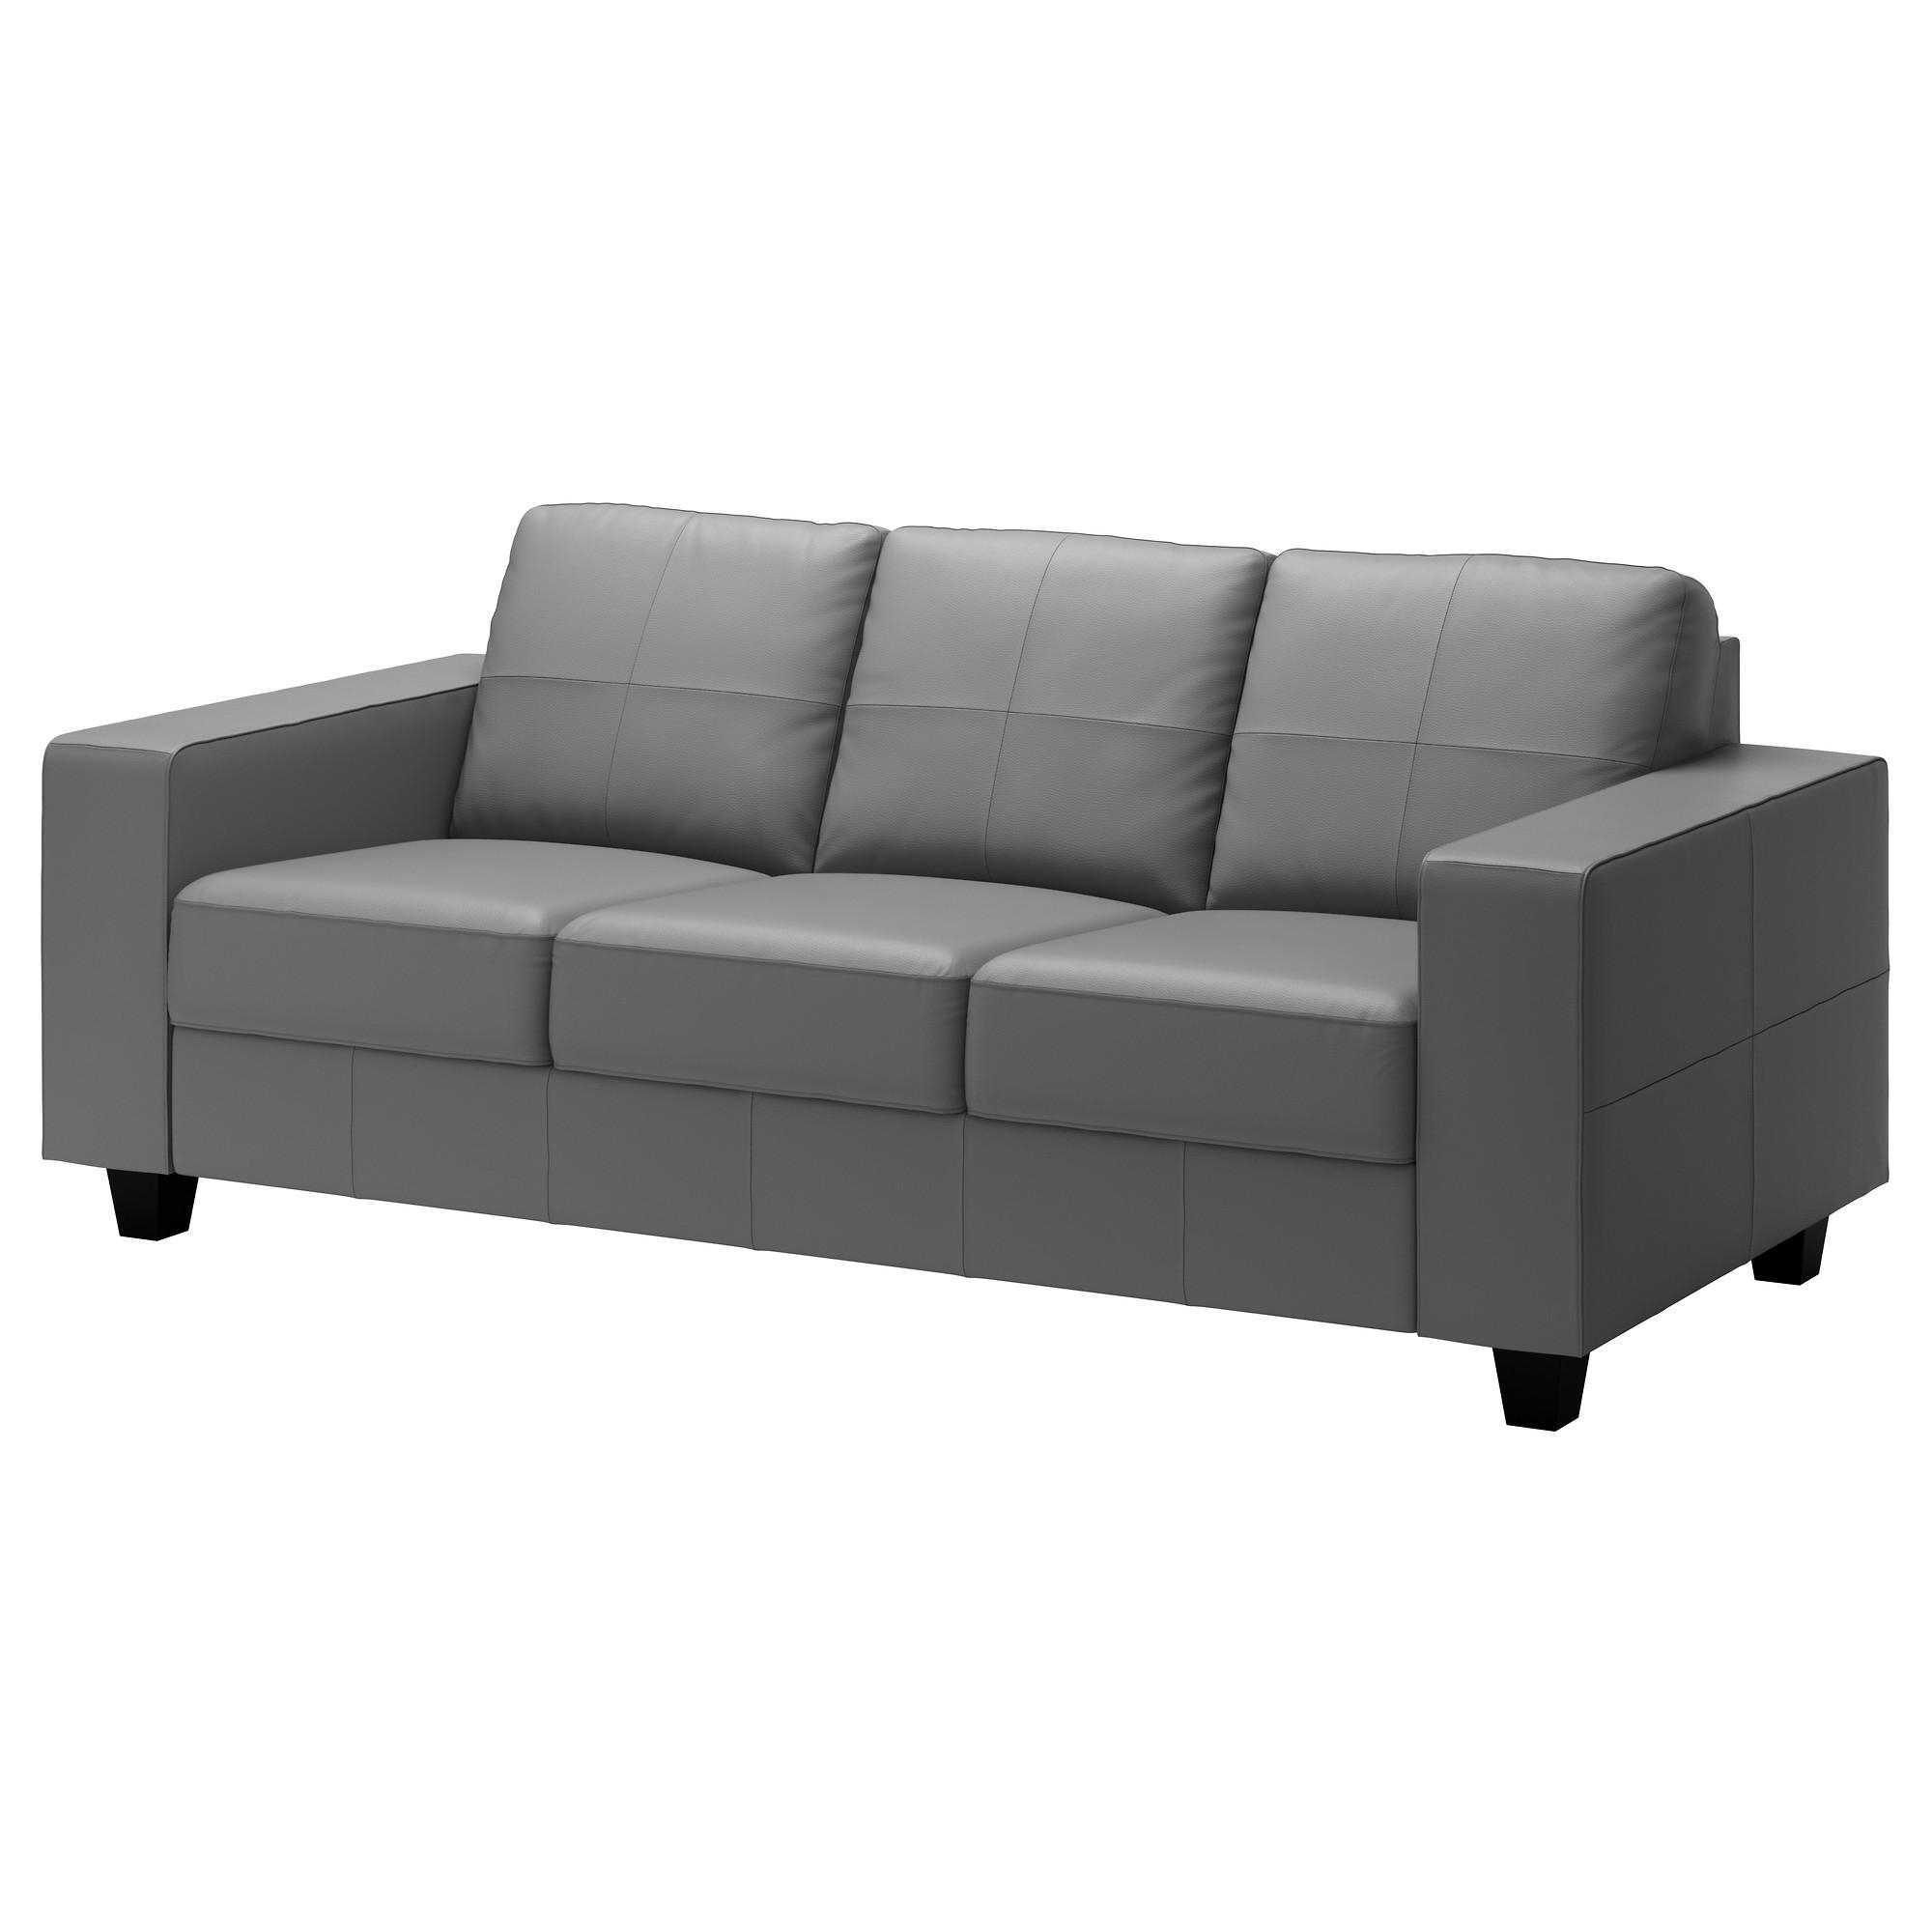 Sofas: Cheap Sofa Sleepers | Futon Sofa Beds | Convertible Sofa Bed Intended For Single Chair Sofa Bed (View 8 of 20)